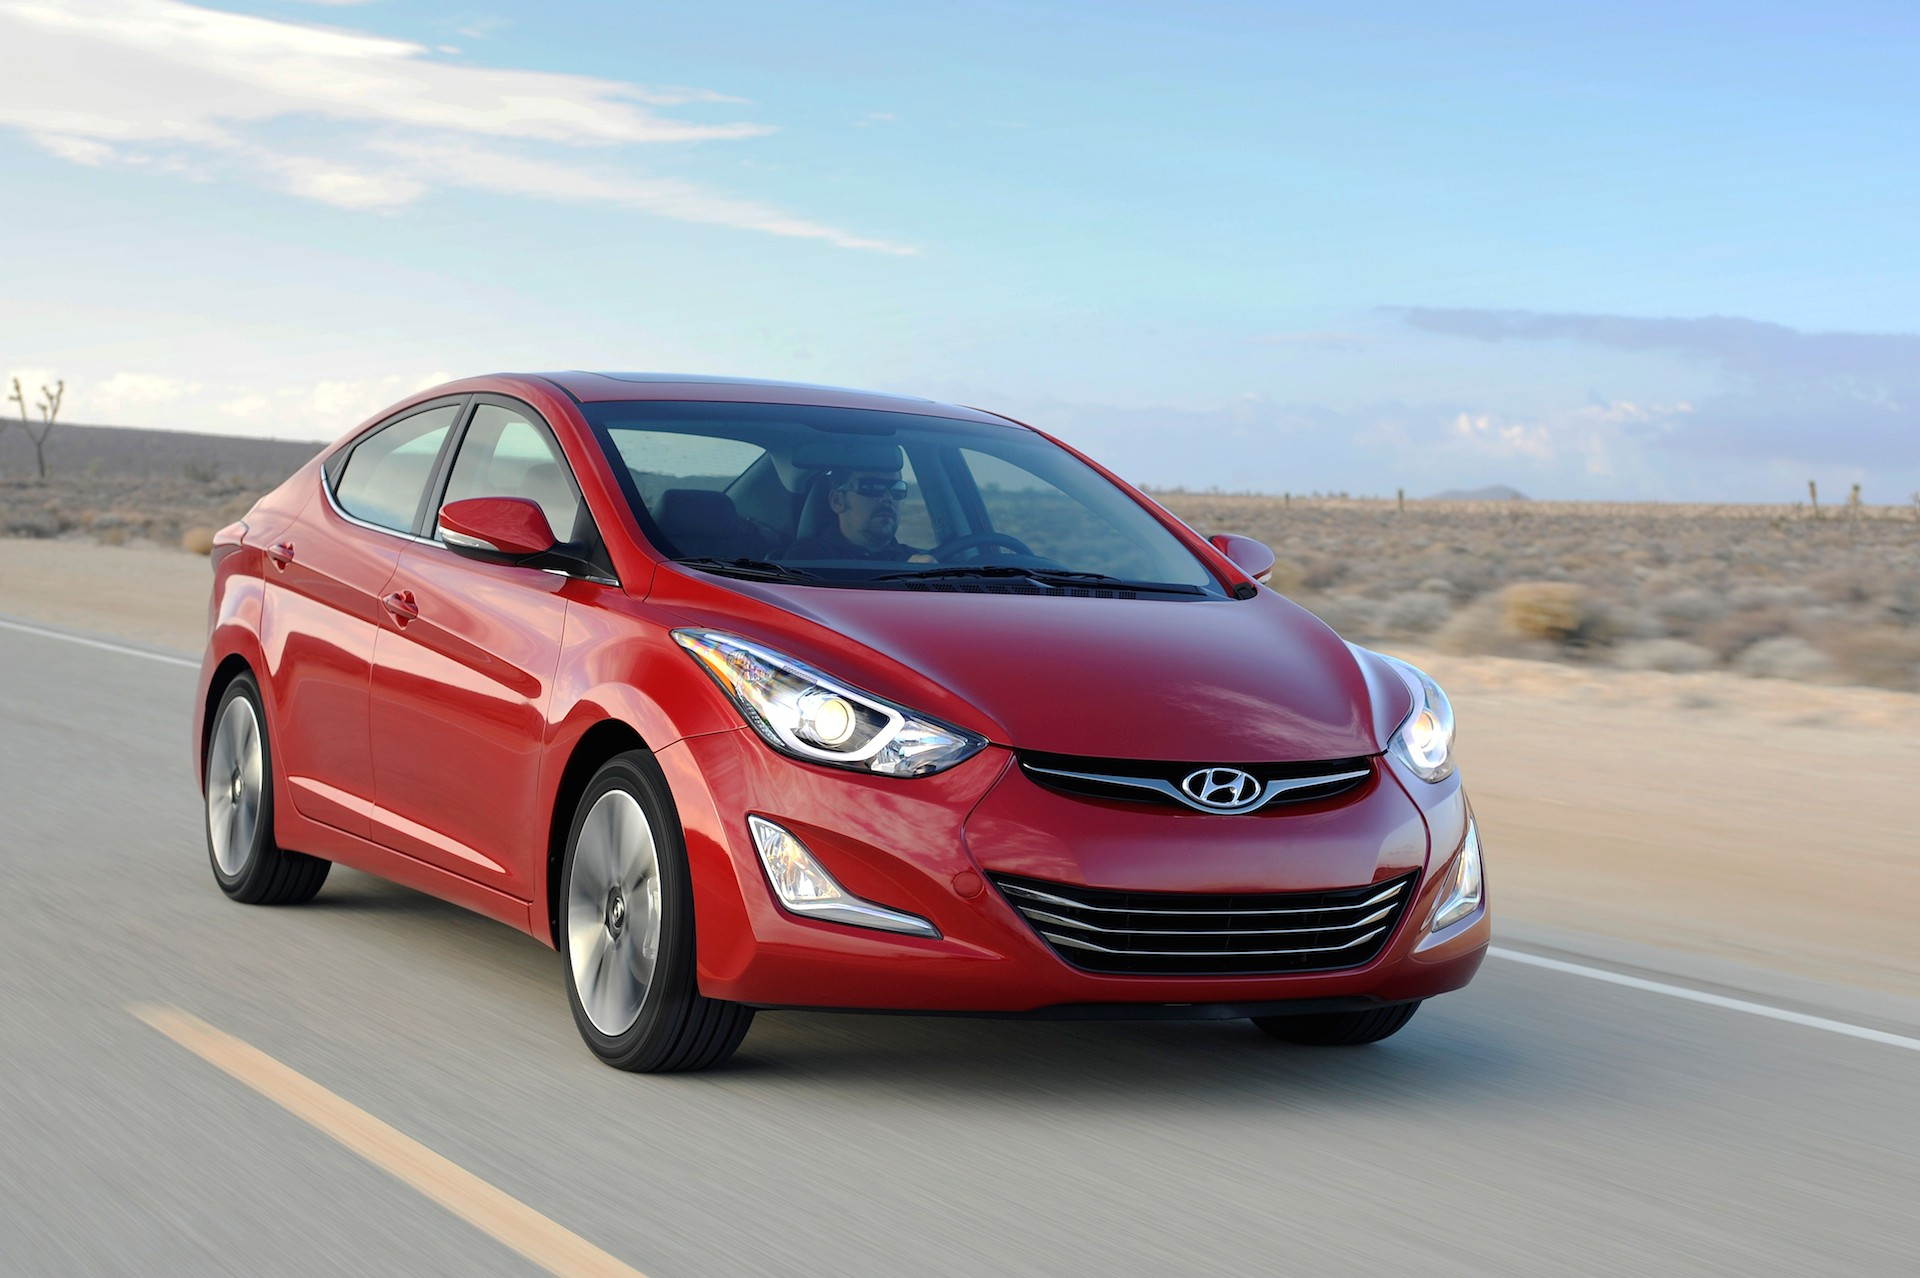 new and used hyundai elantra prices photos reviews specs the car connection. Black Bedroom Furniture Sets. Home Design Ideas